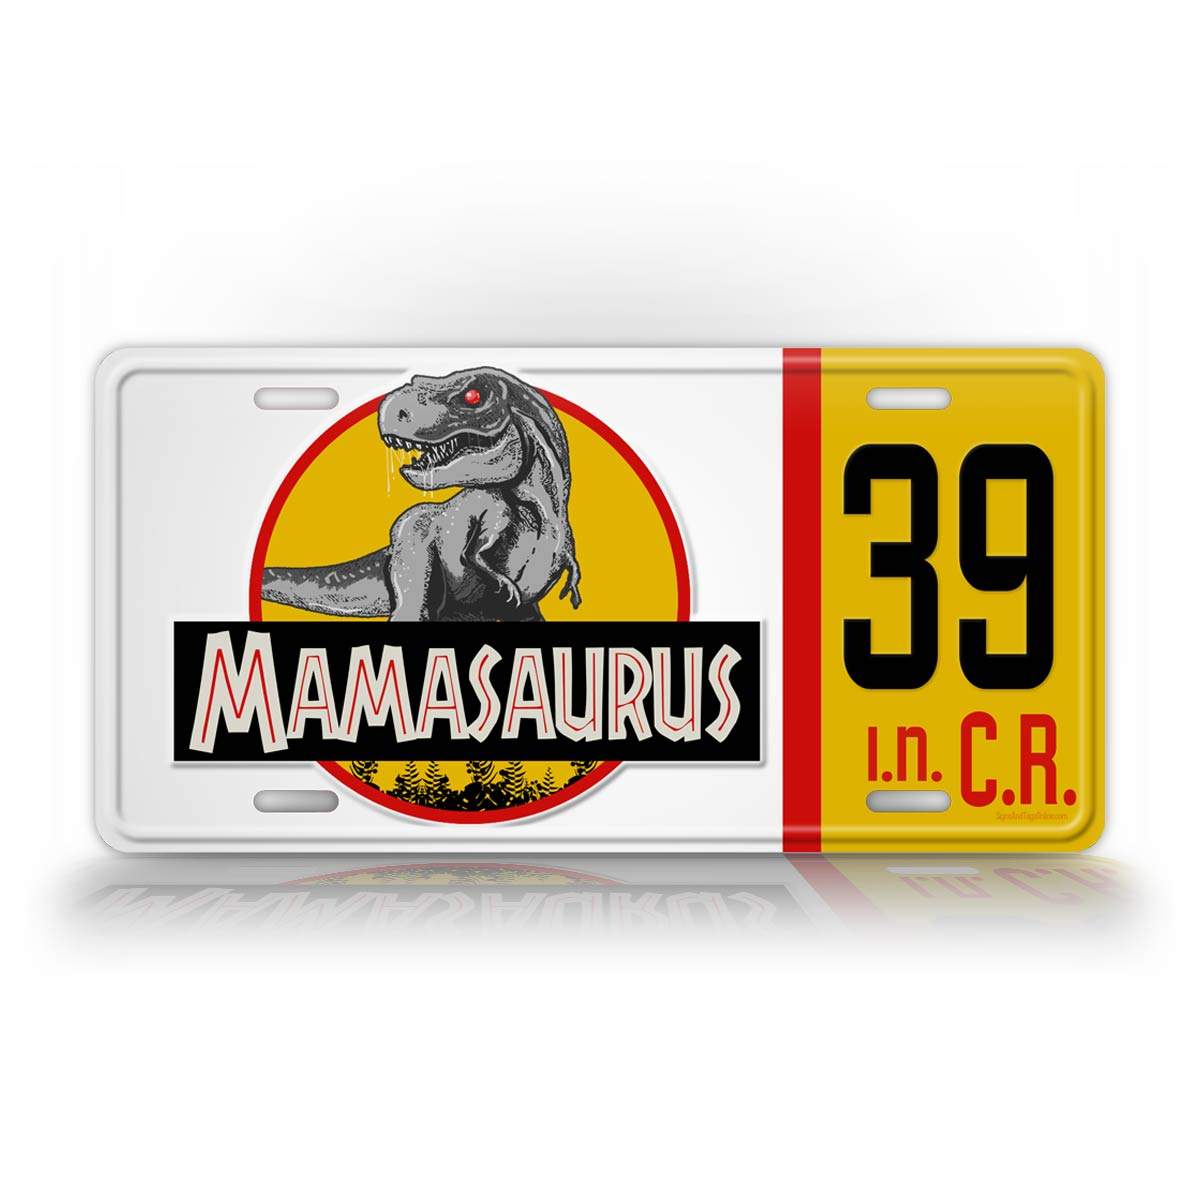 Personalized Mamasaurus Jurassic Park World Jeep License Plate